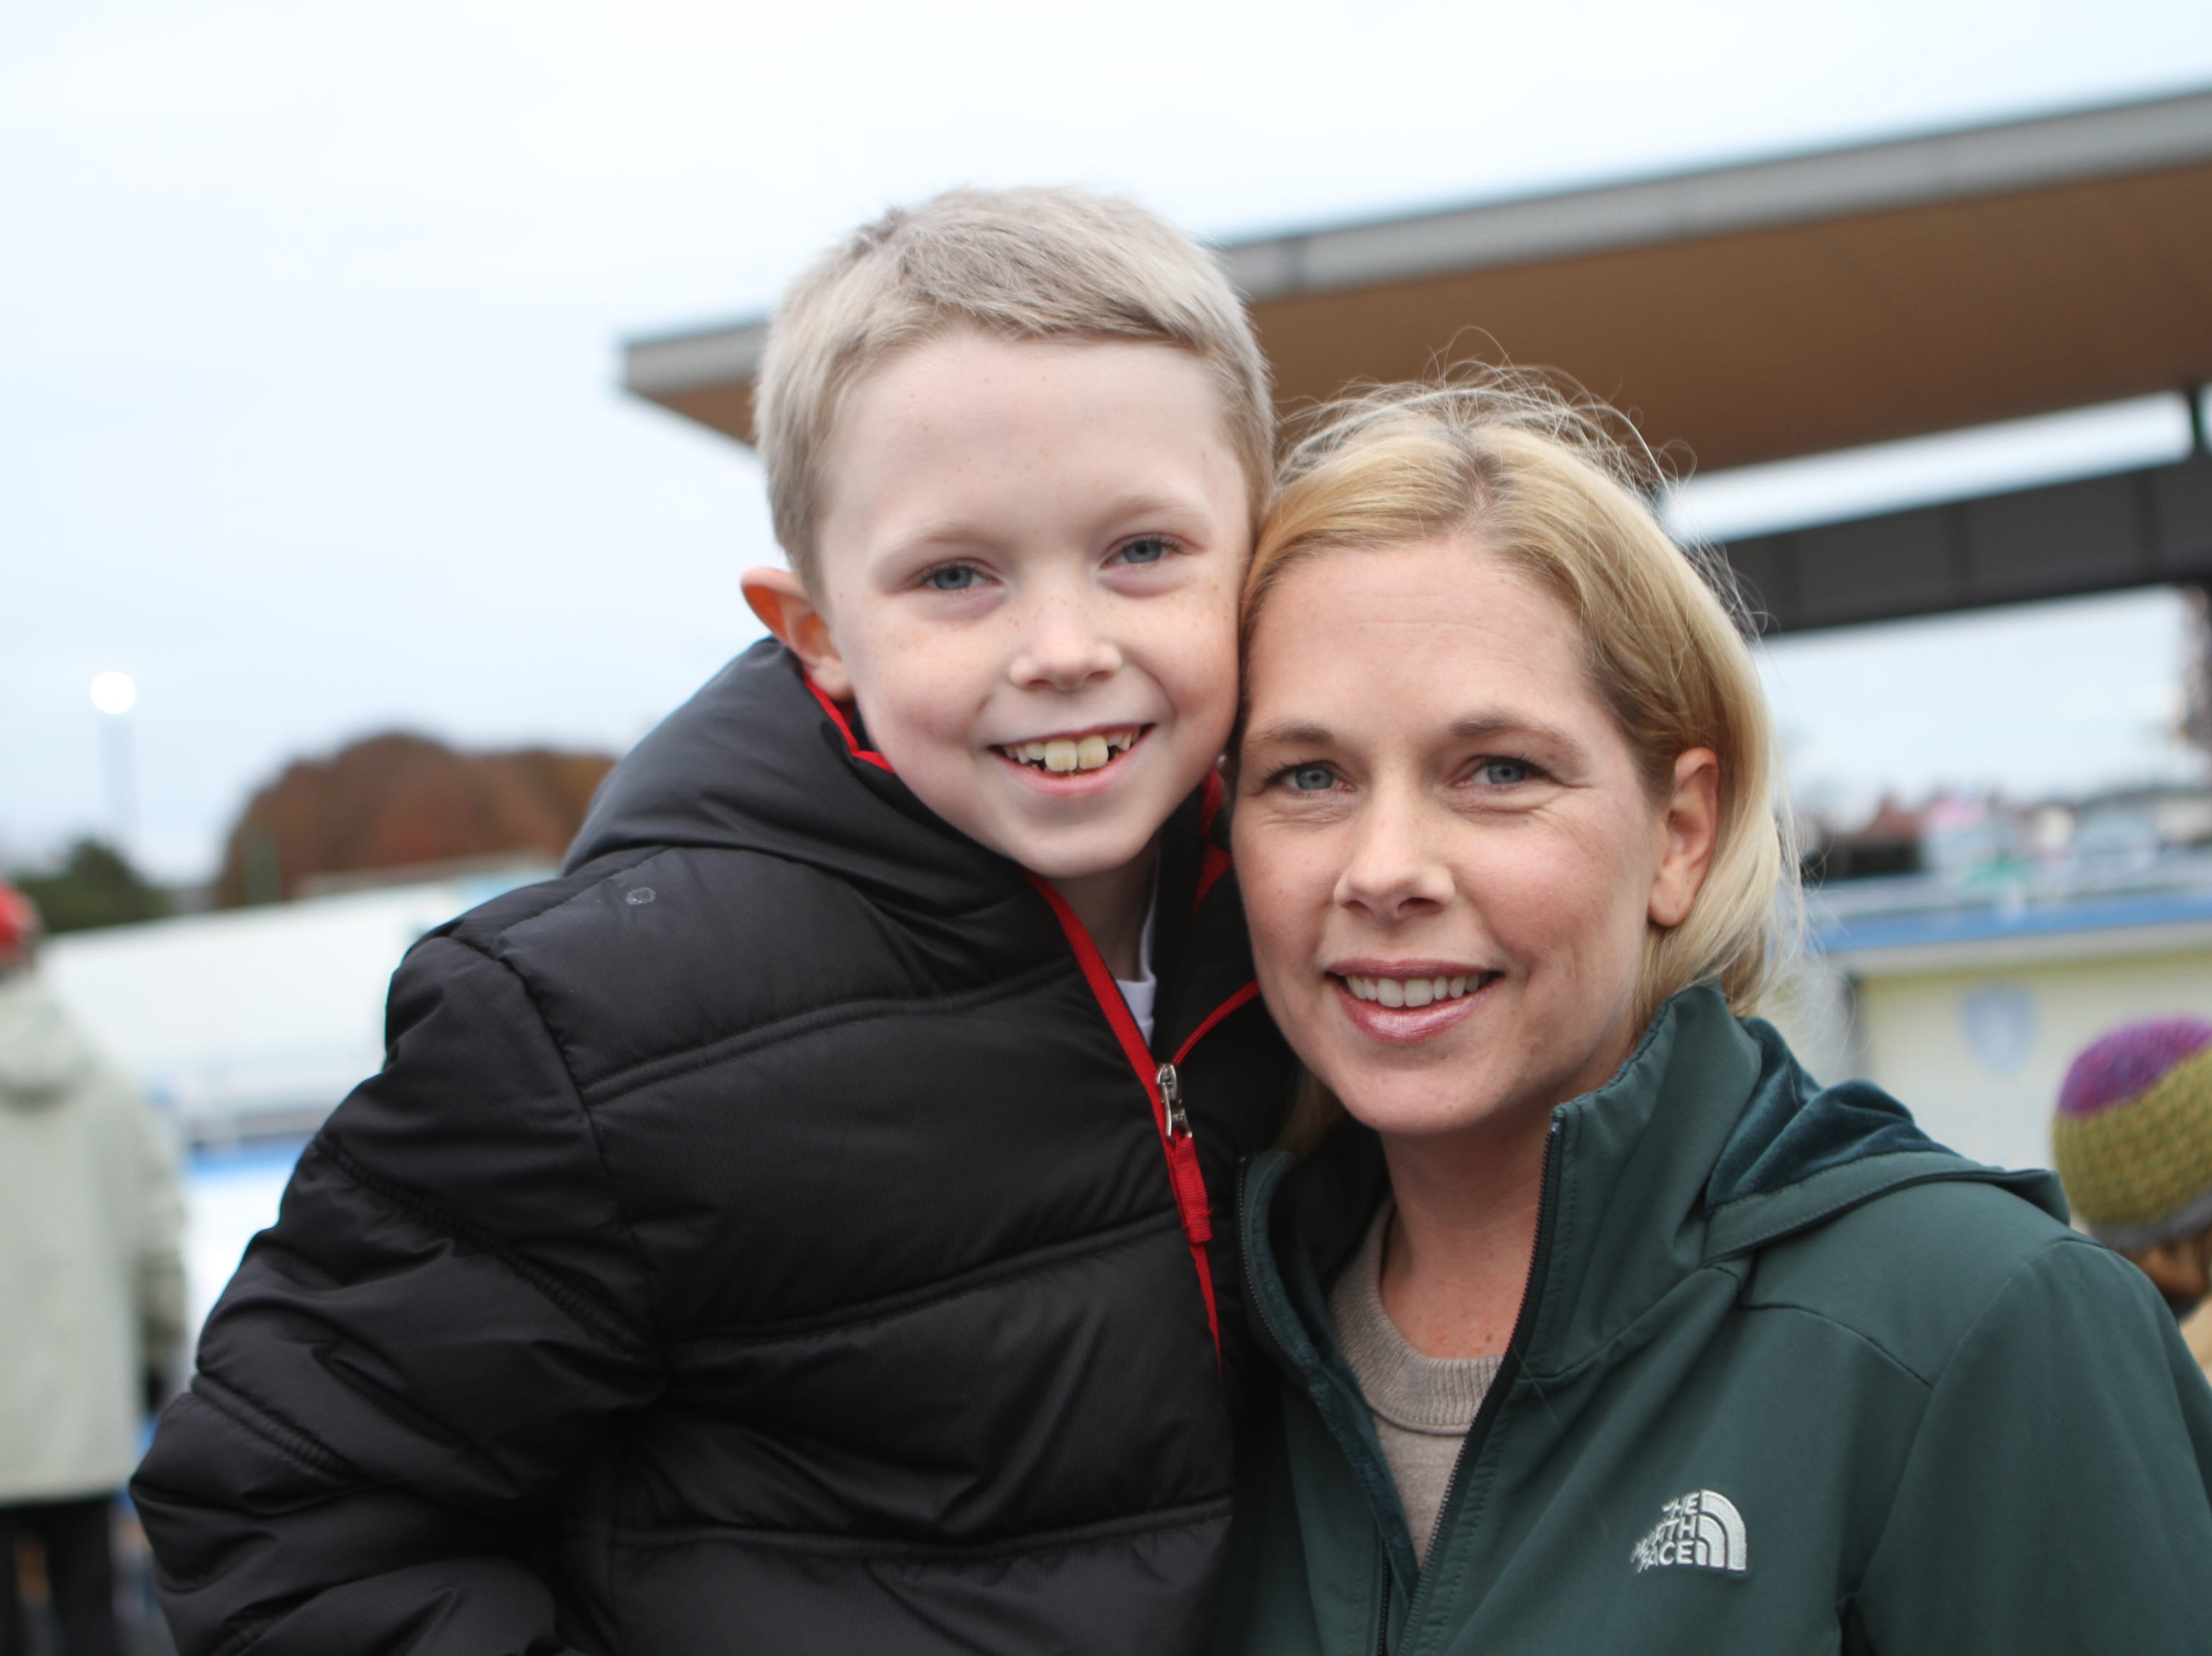 Mikey and Jamie McAdaragh at the Downtown Commons Winter Ice Rink opening on Friday, Nov. 23, 2018.